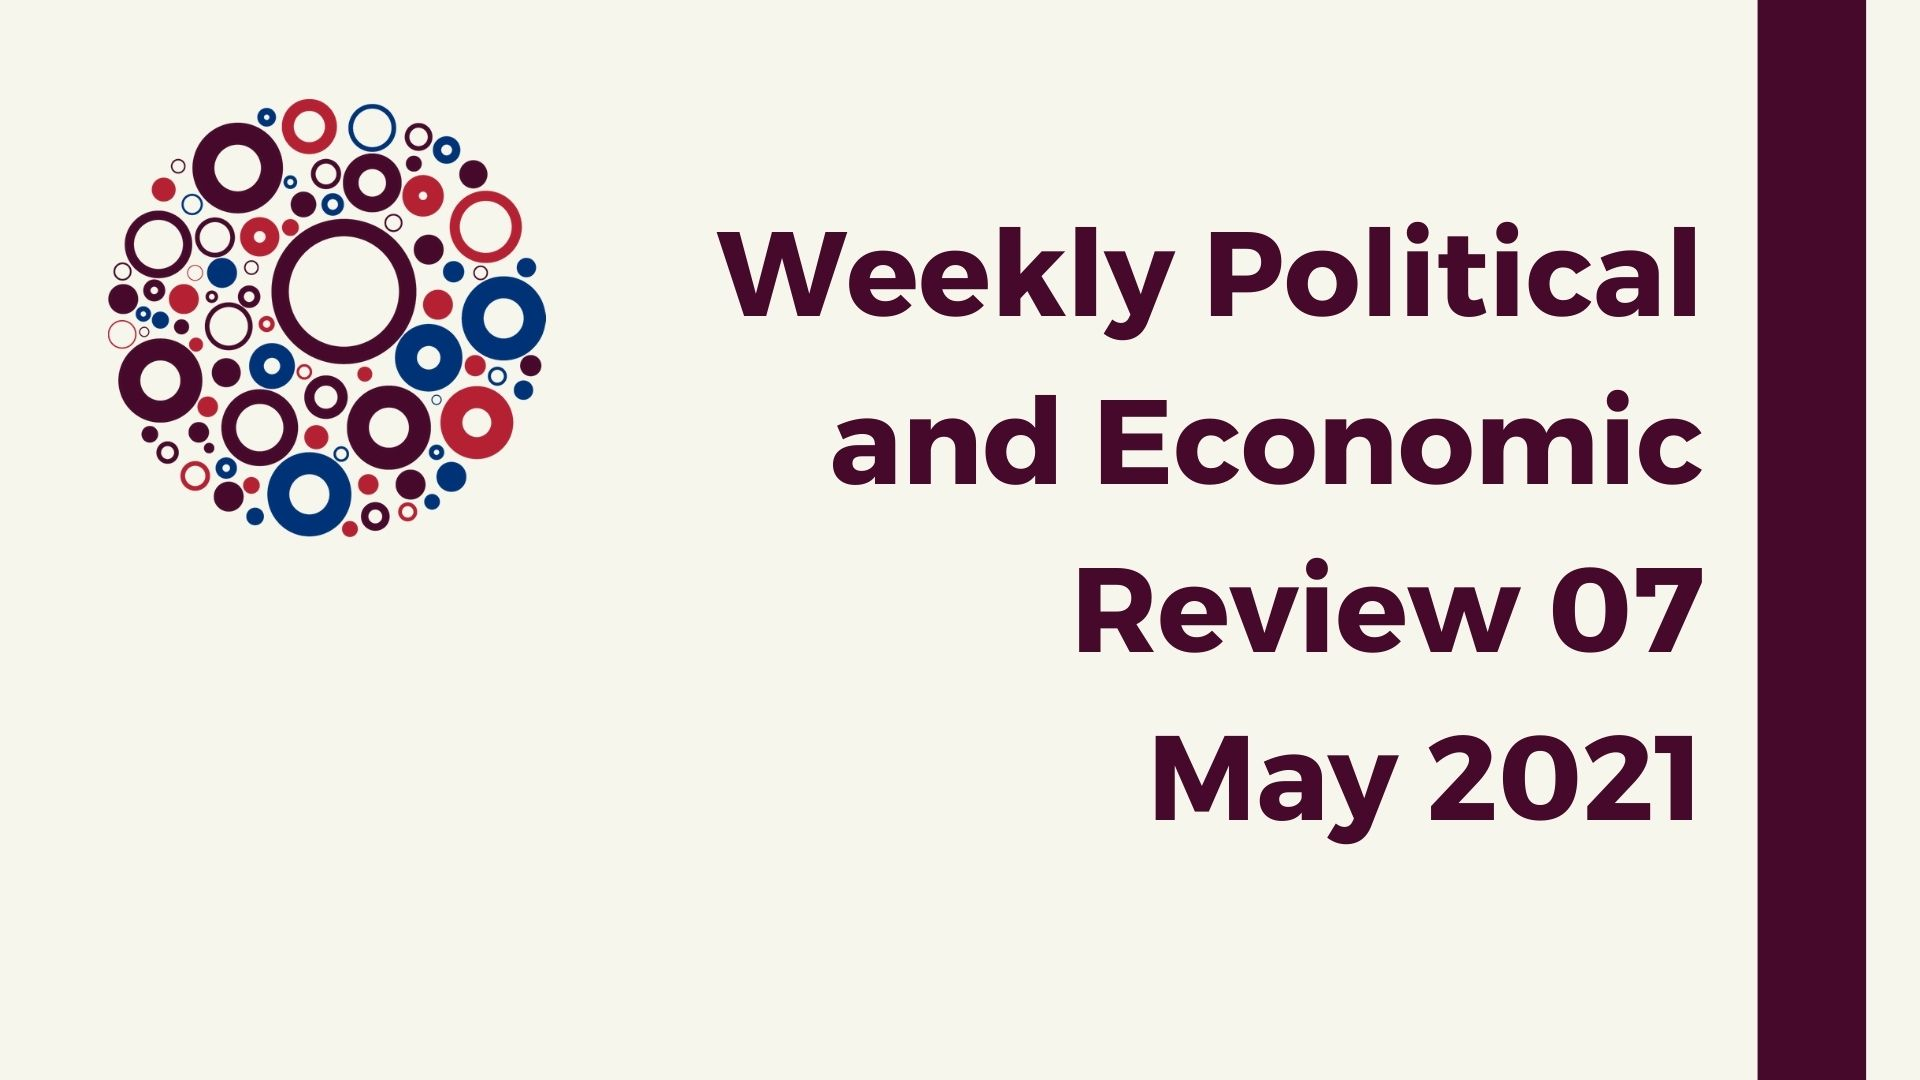 Weekly Political and Economic Review 07 May 2021